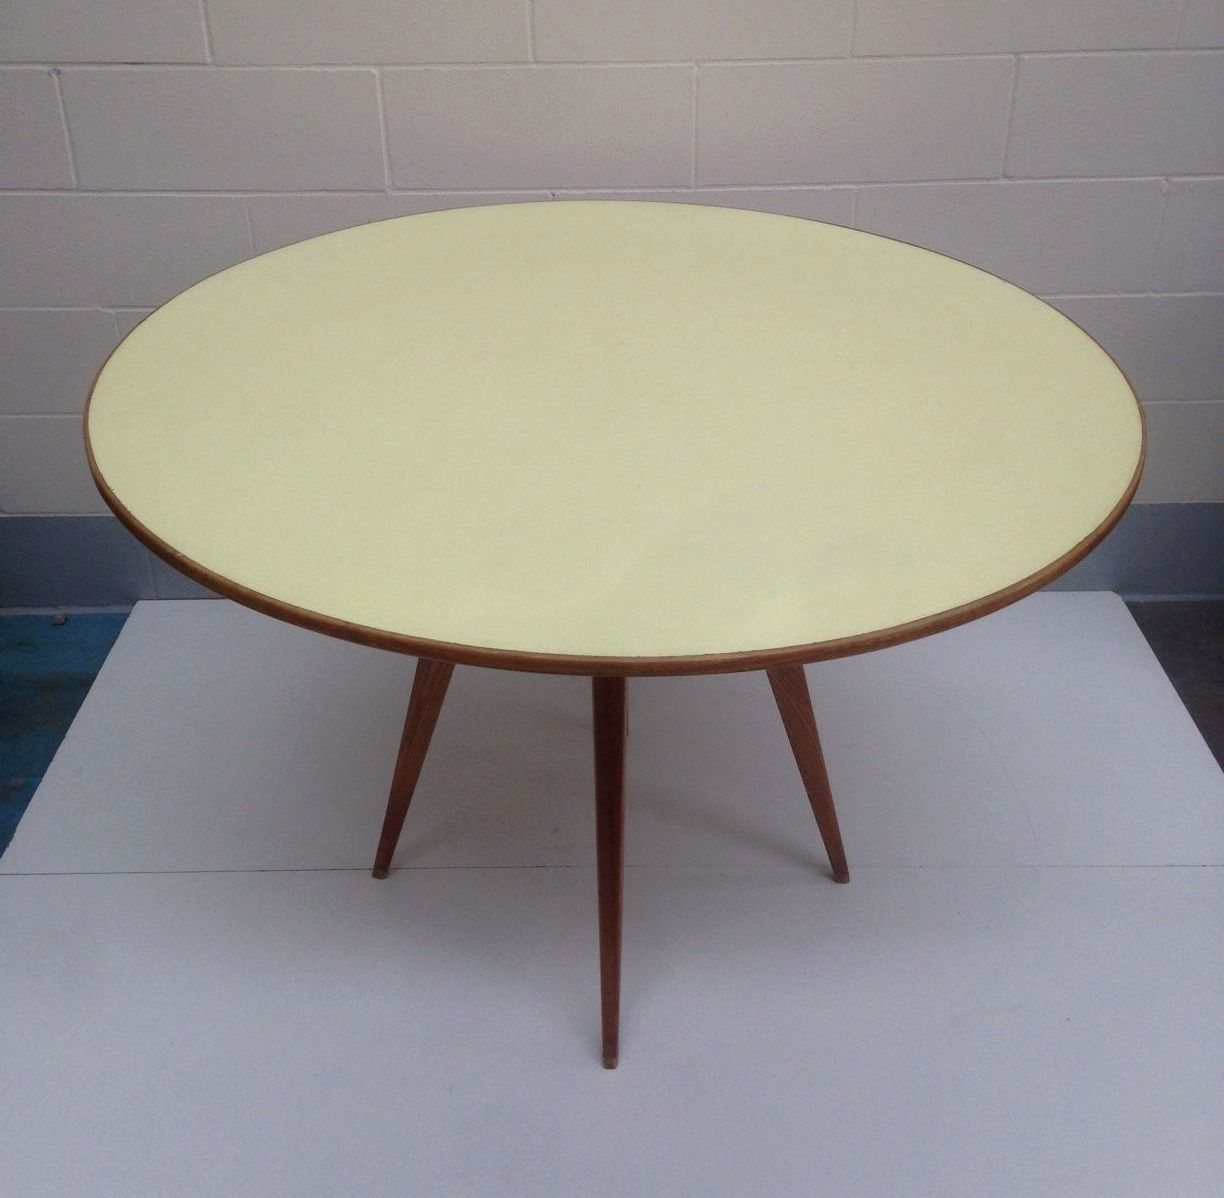 1950 S Gio Ponti Table With Yellow Formica Top Decorative Collective